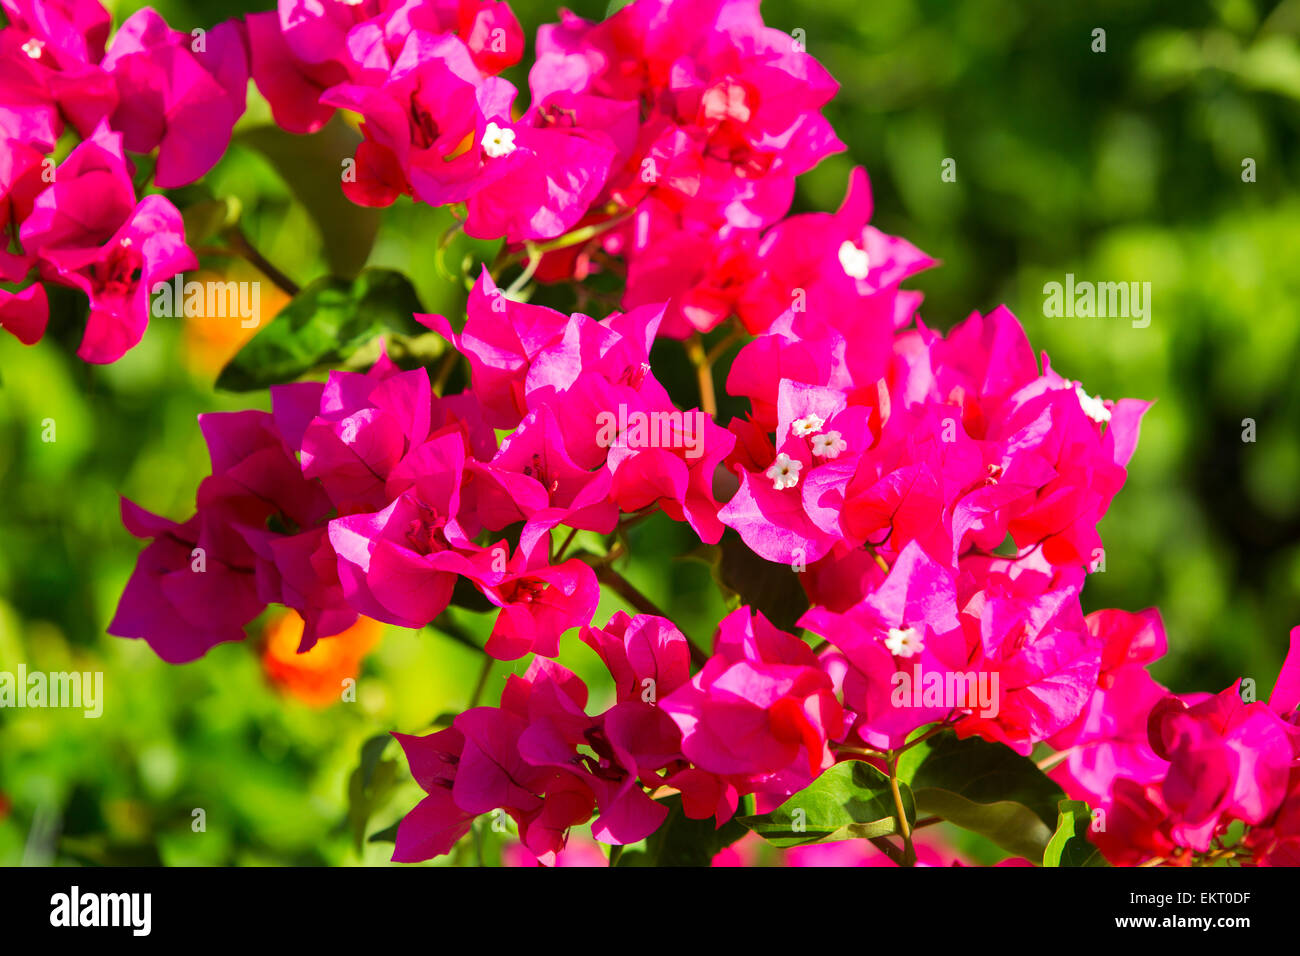 Bougainvillea at Cape Maclear on the shores of Lake Malawi, Malawi, Africa. - Stock Image